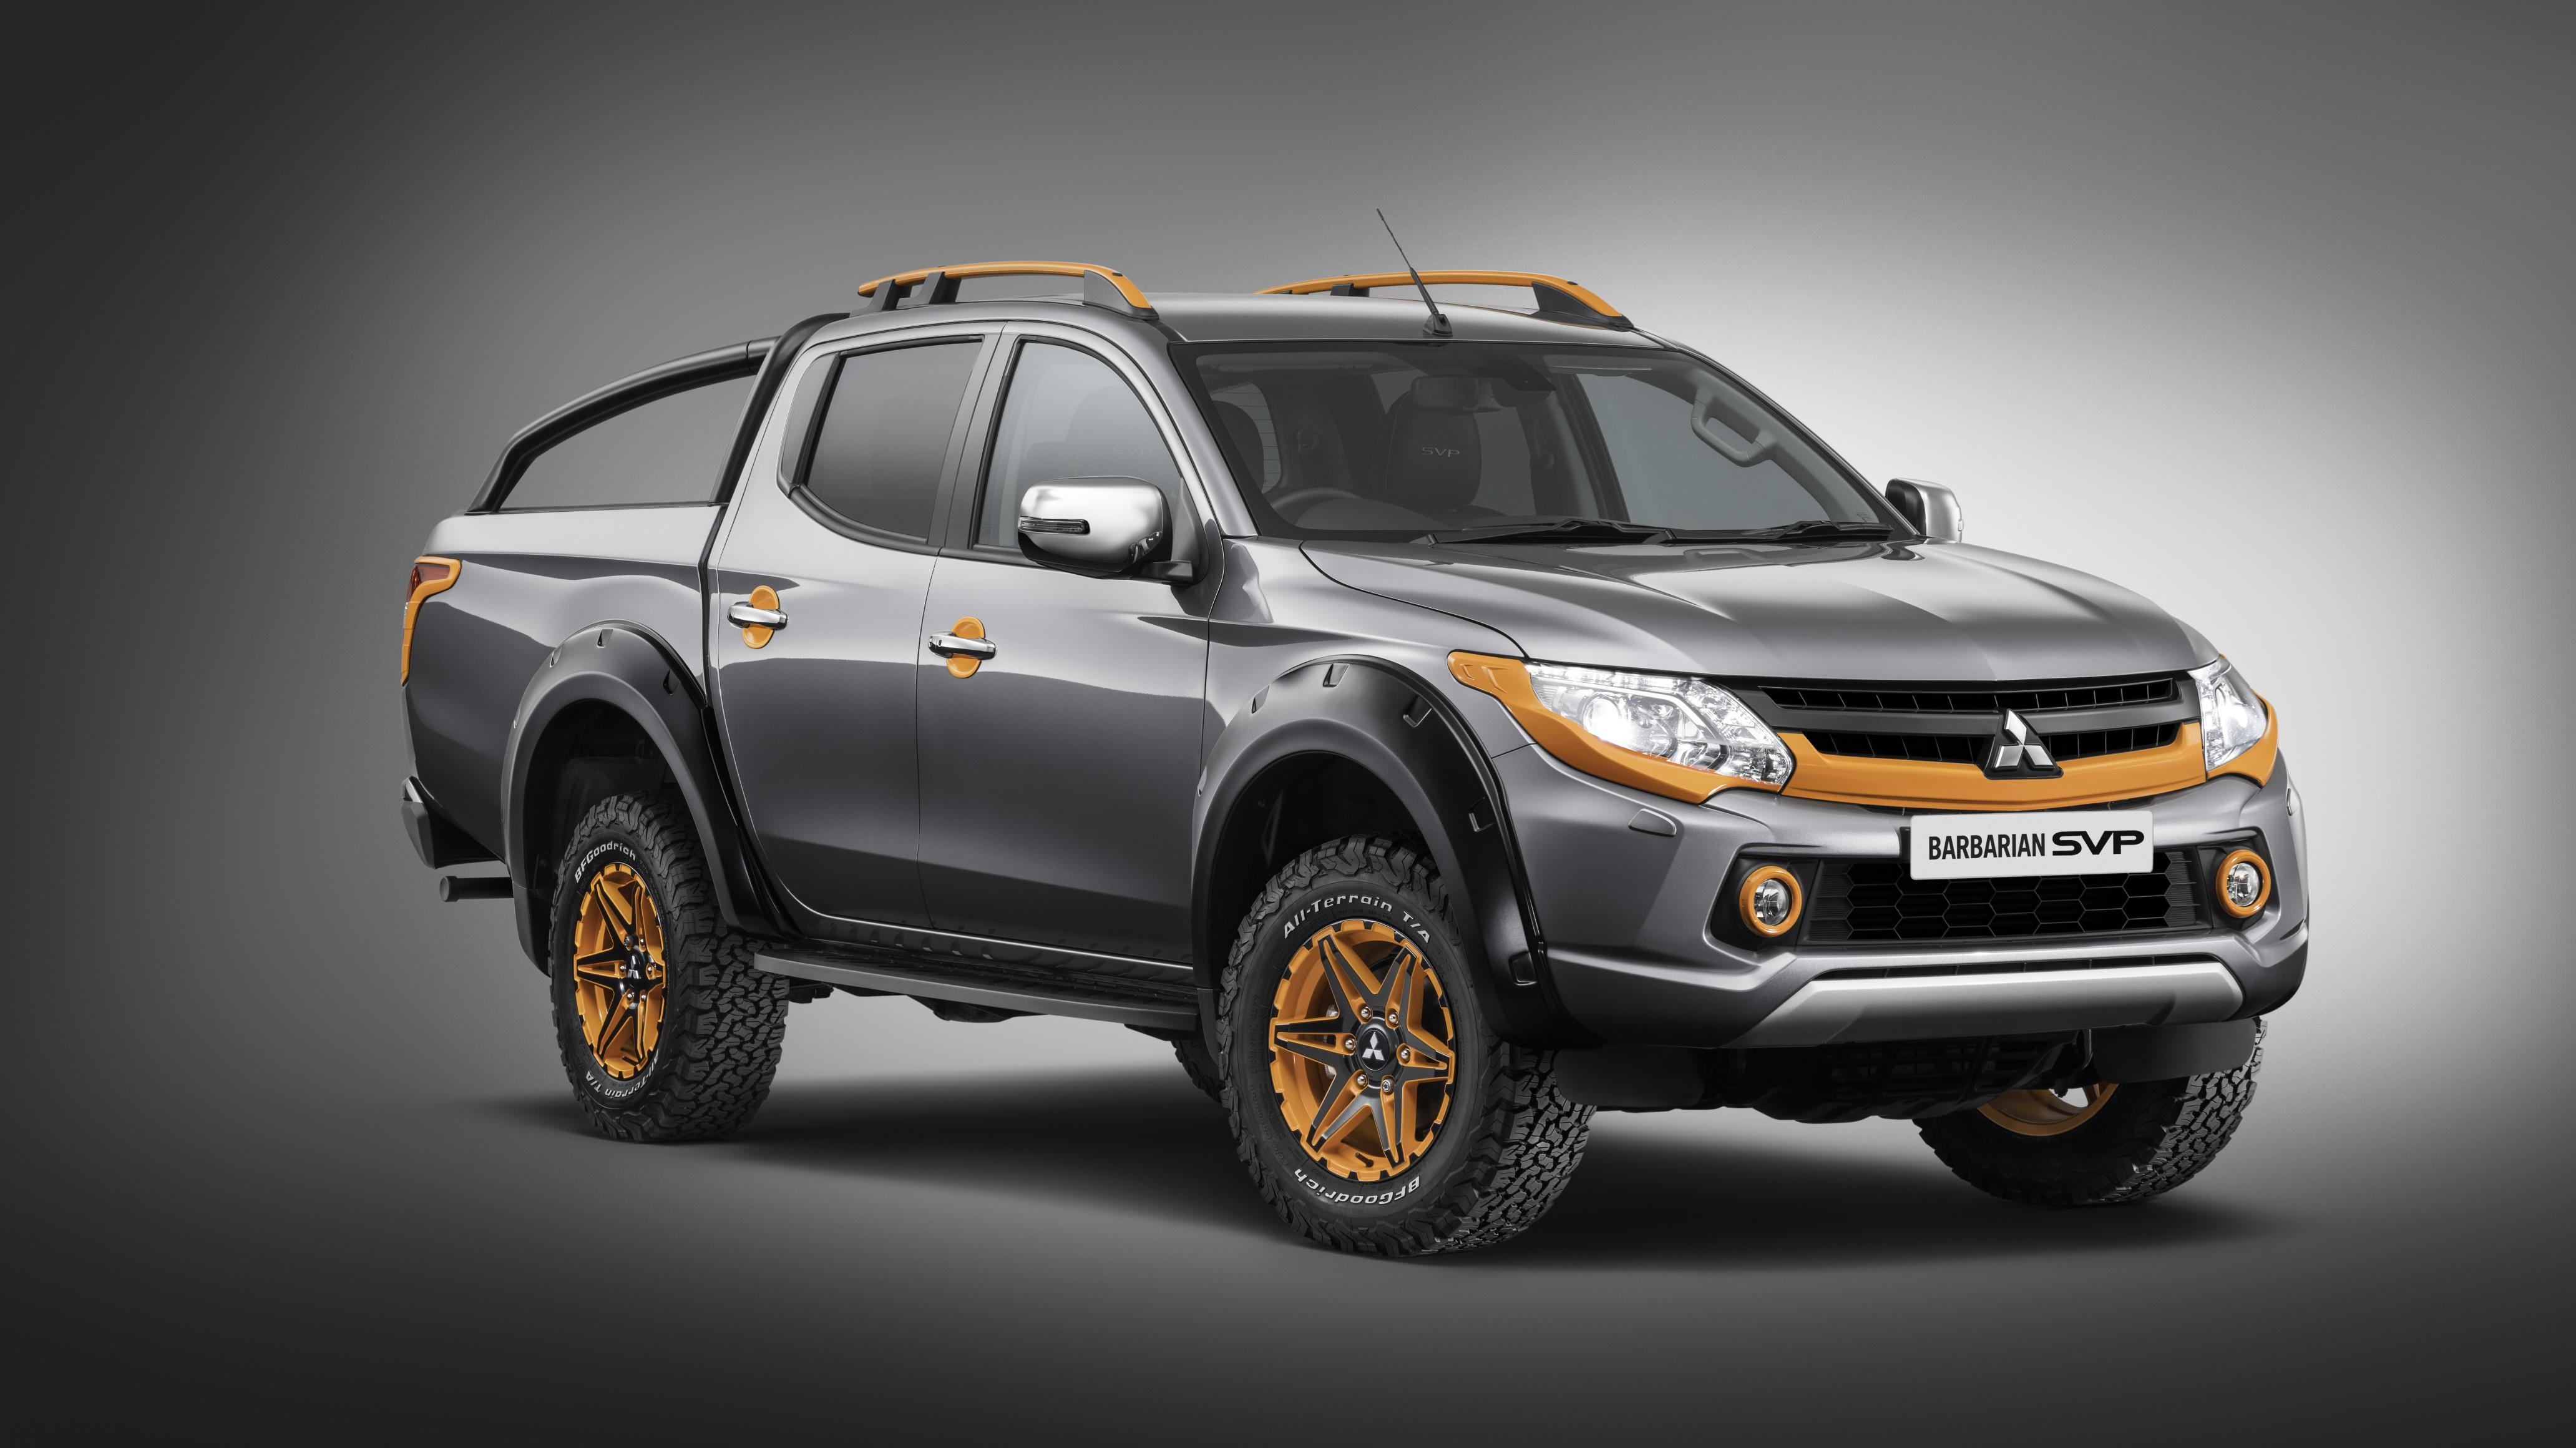 The L200 is a rugged pick-up truck